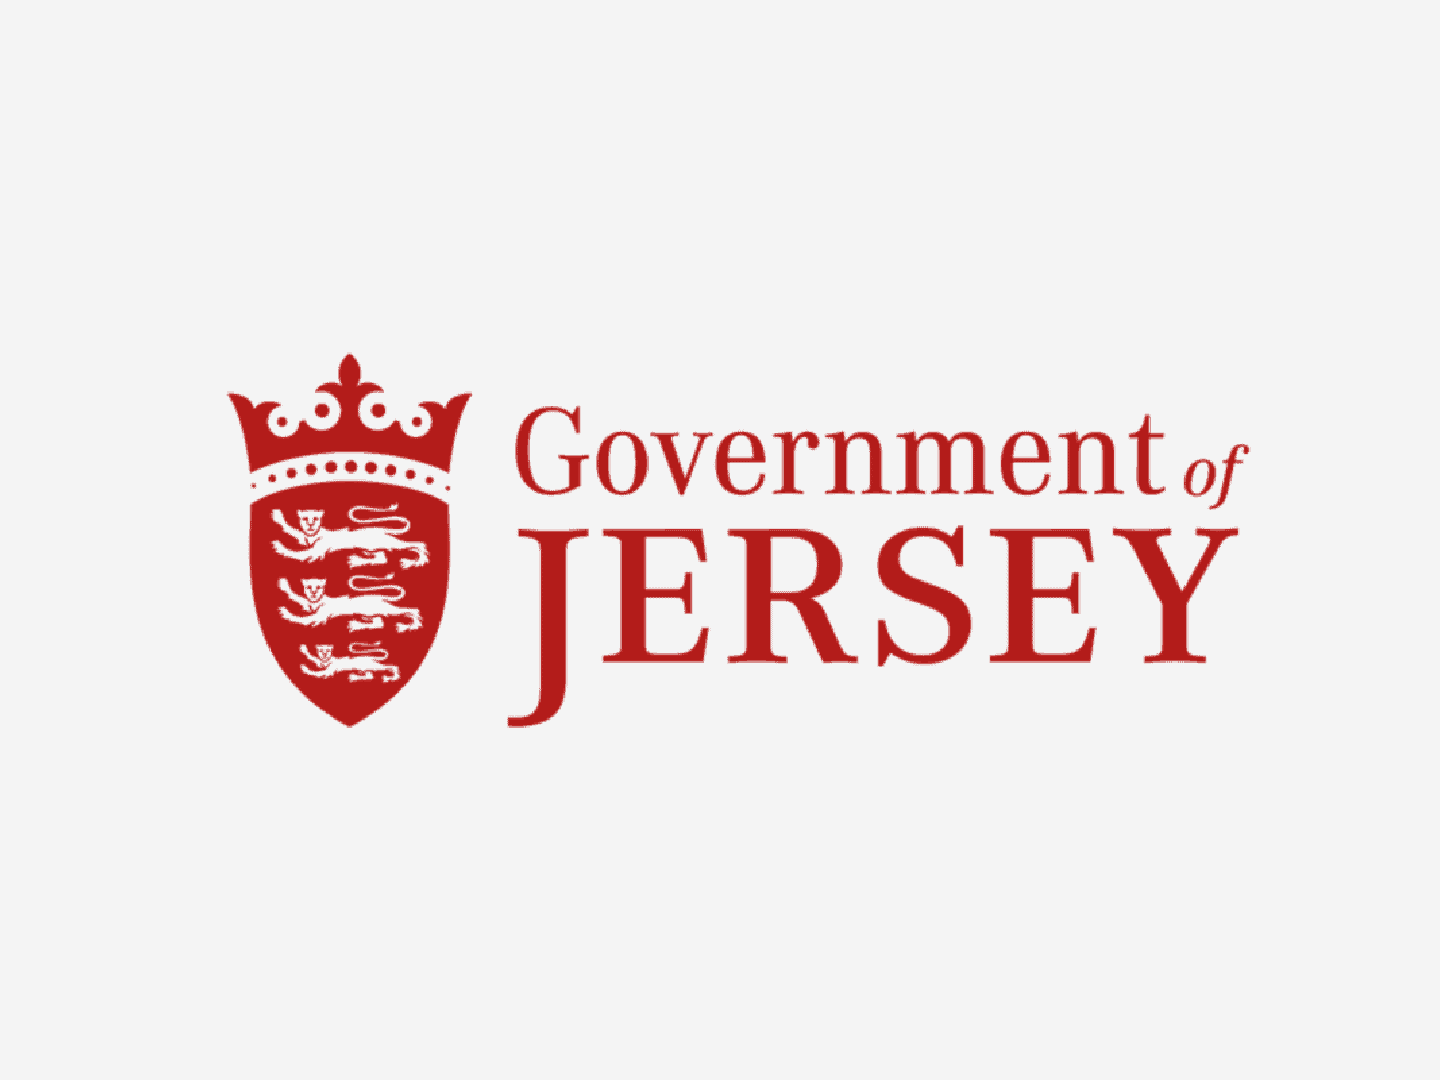 govt of jersey